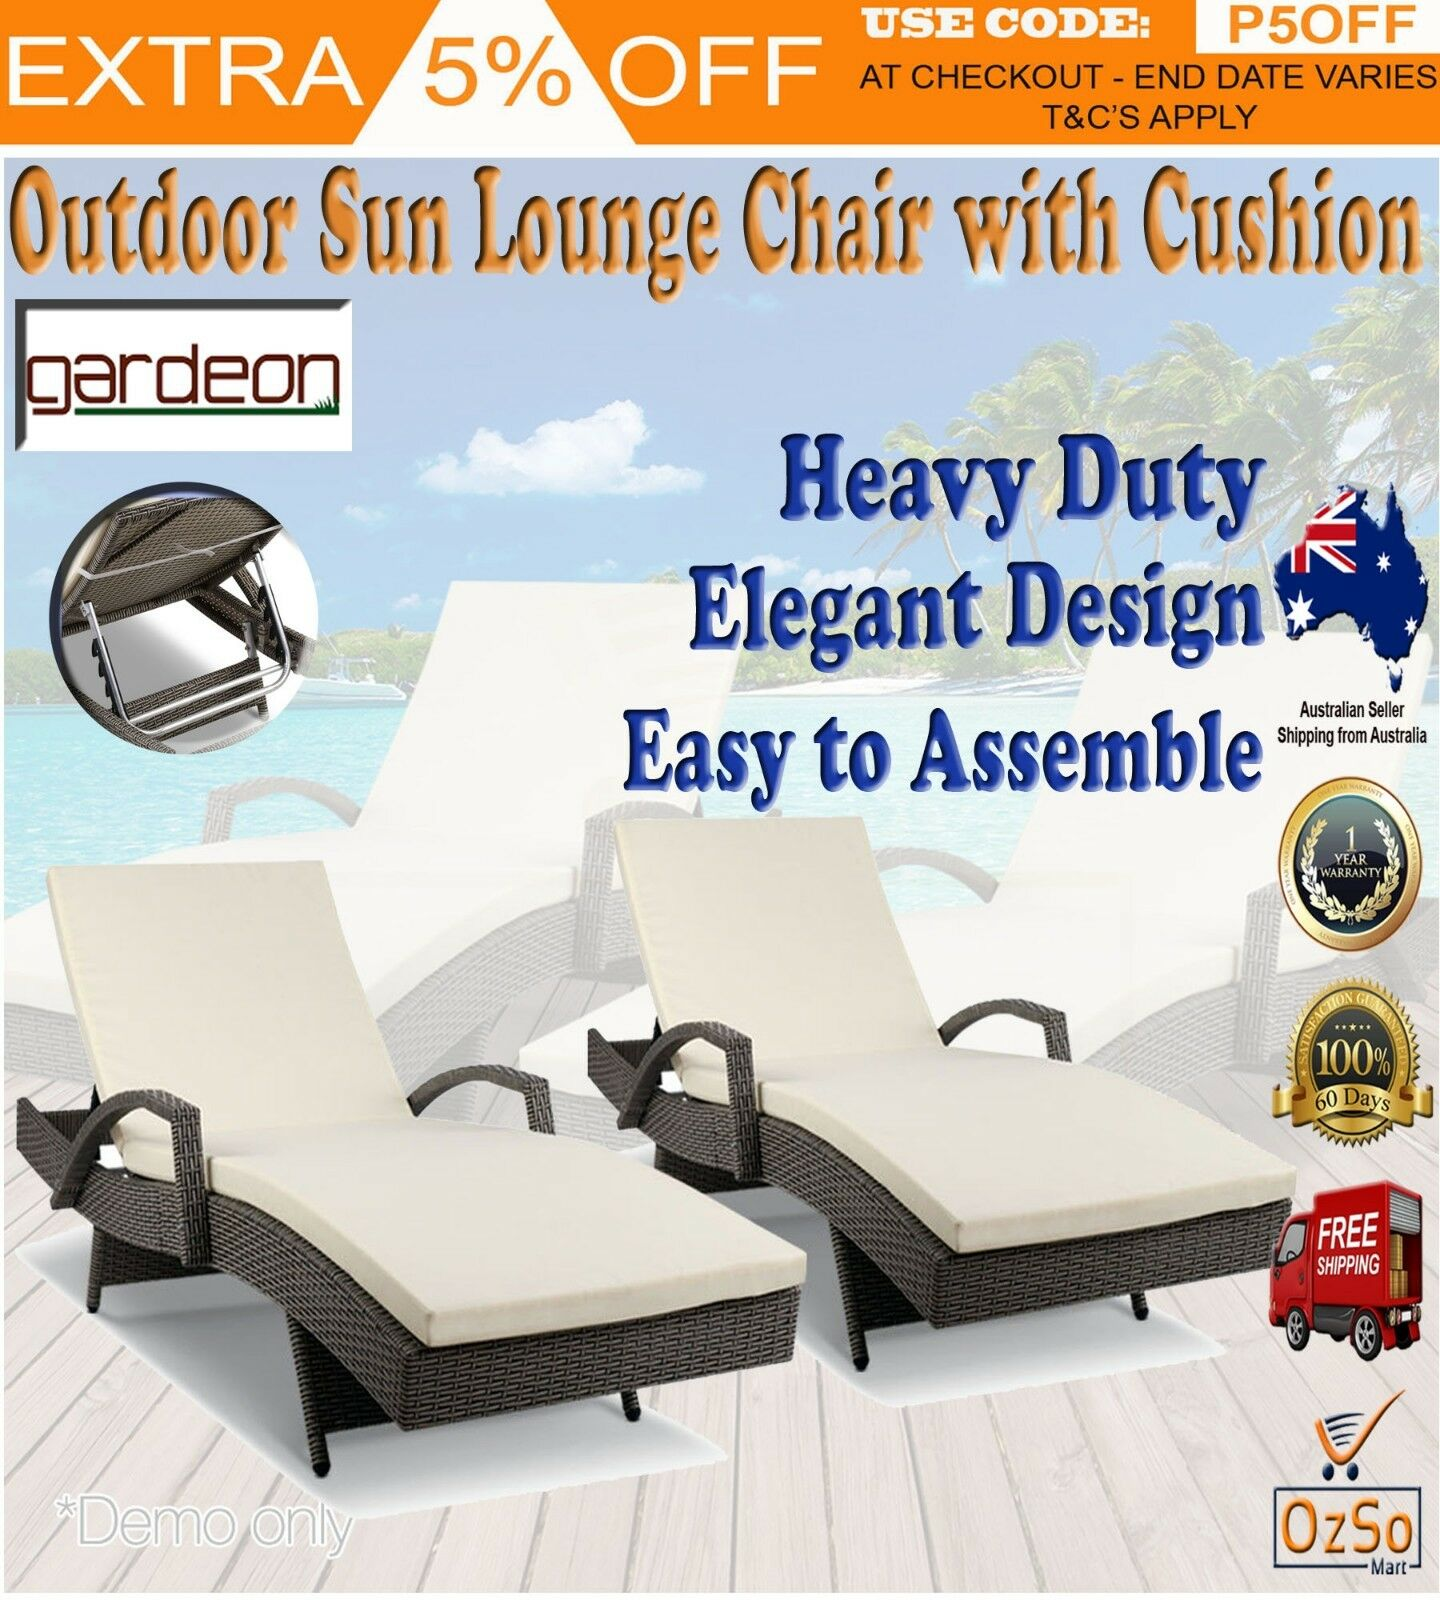 Admirable Details About New 2X Outdoor Sun Lounge Pool Loungers Lounges Furniture Banana Lounger Wicker Beatyapartments Chair Design Images Beatyapartmentscom